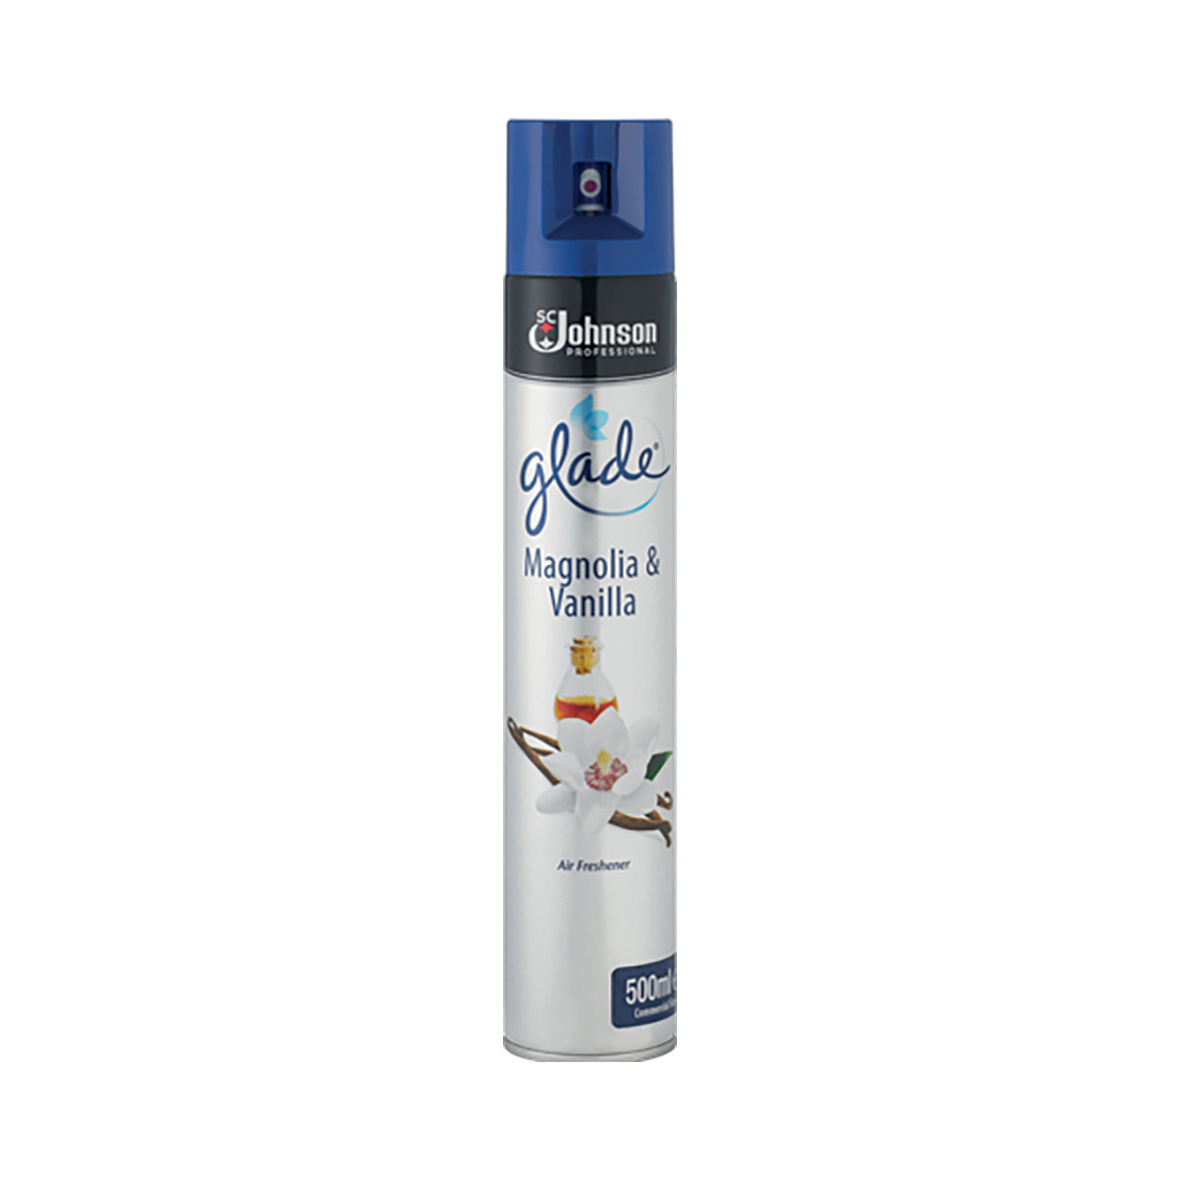 Image for Glade Air Freshener Aerosol Spray Can Vanilla & Magnolia 500ml Ref 71225